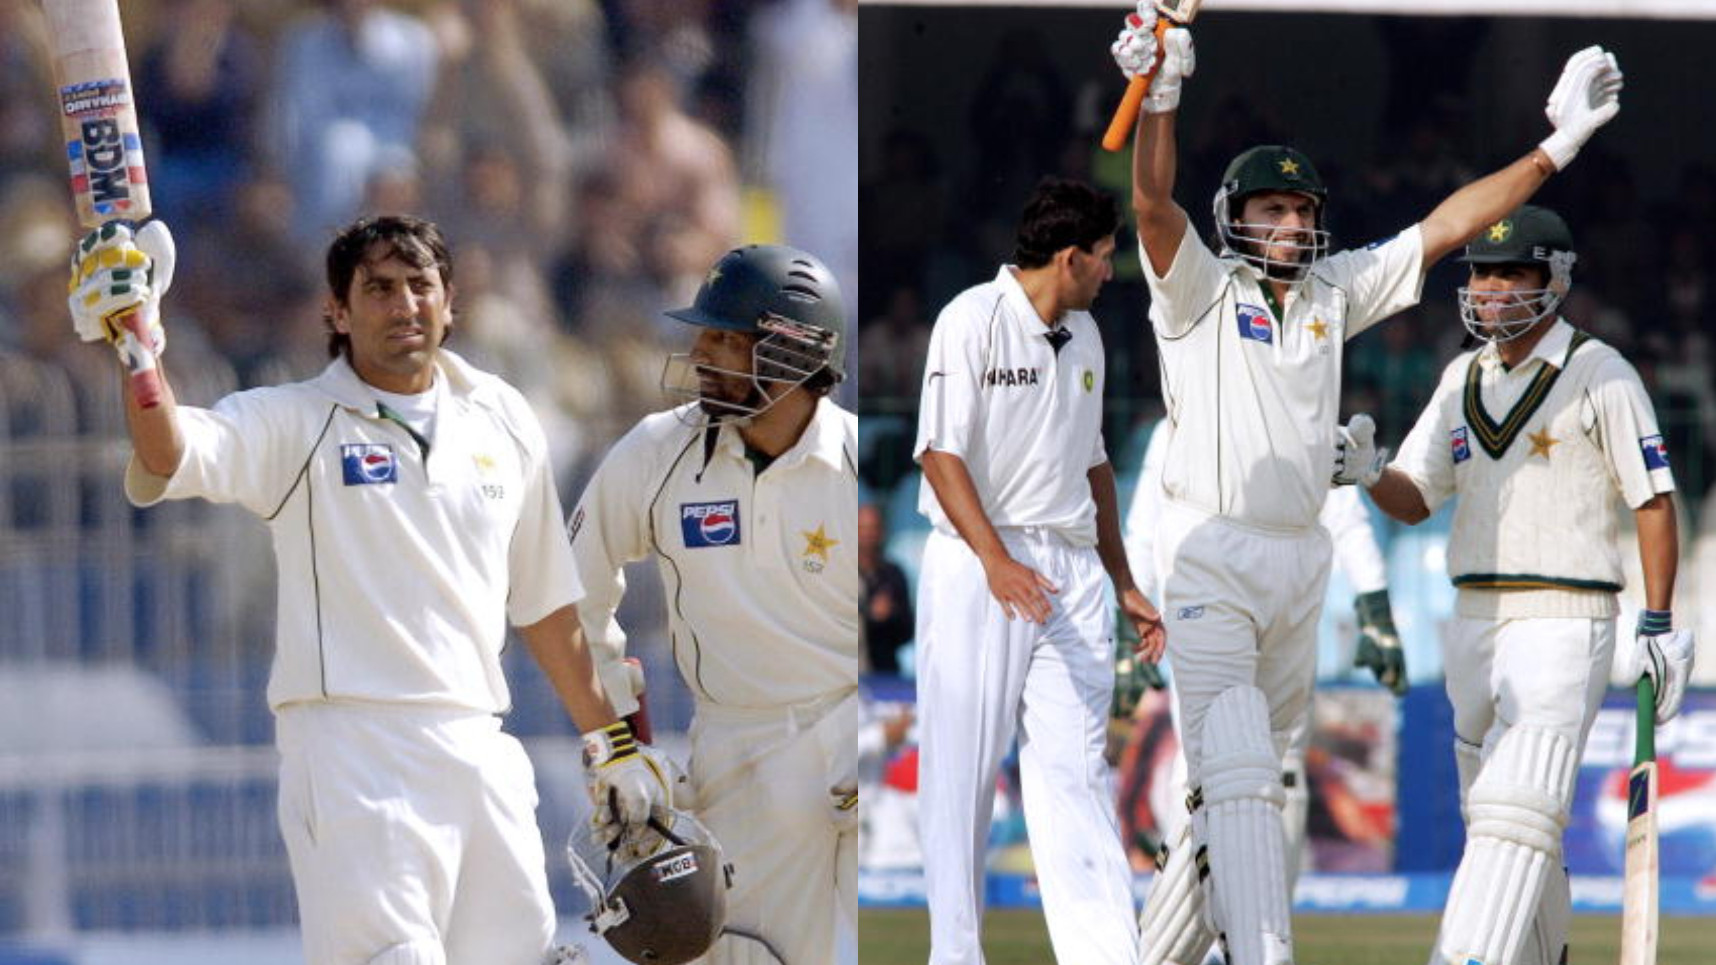 They wanted Shahid Afridi at the crease- Younis Khan on Lahore crowd chanting for his dismissal